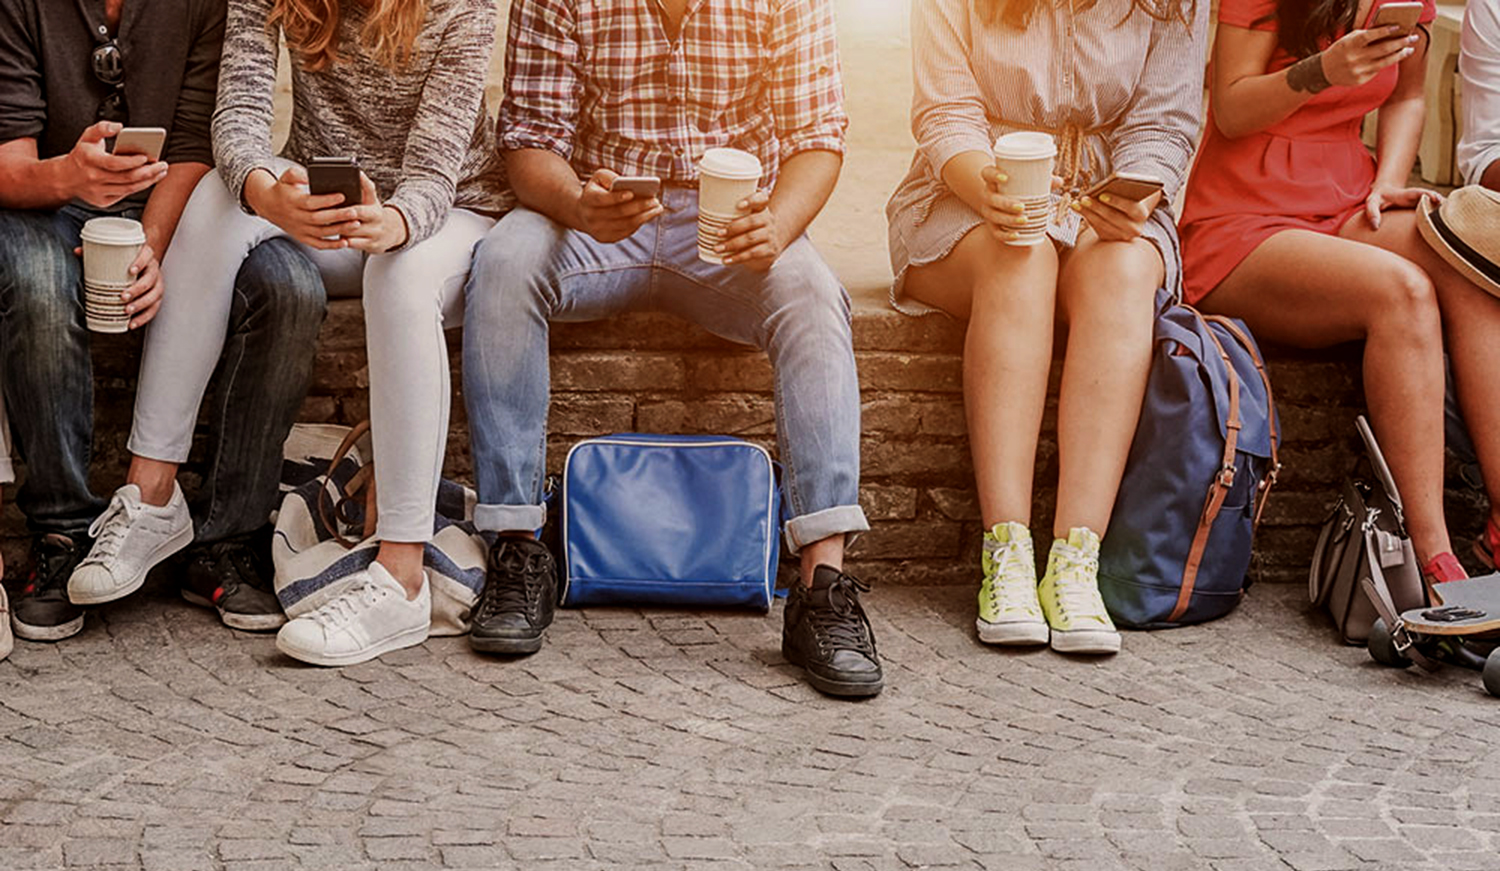 Young Adults - Our young adults small group meets every Thursday. Come for a free meal and spend some time with us as we study God's word. We meet Thursdays 7:00-9:00pm.Lead: Jonathan Manos & Nathan Marriott 805.376.1800